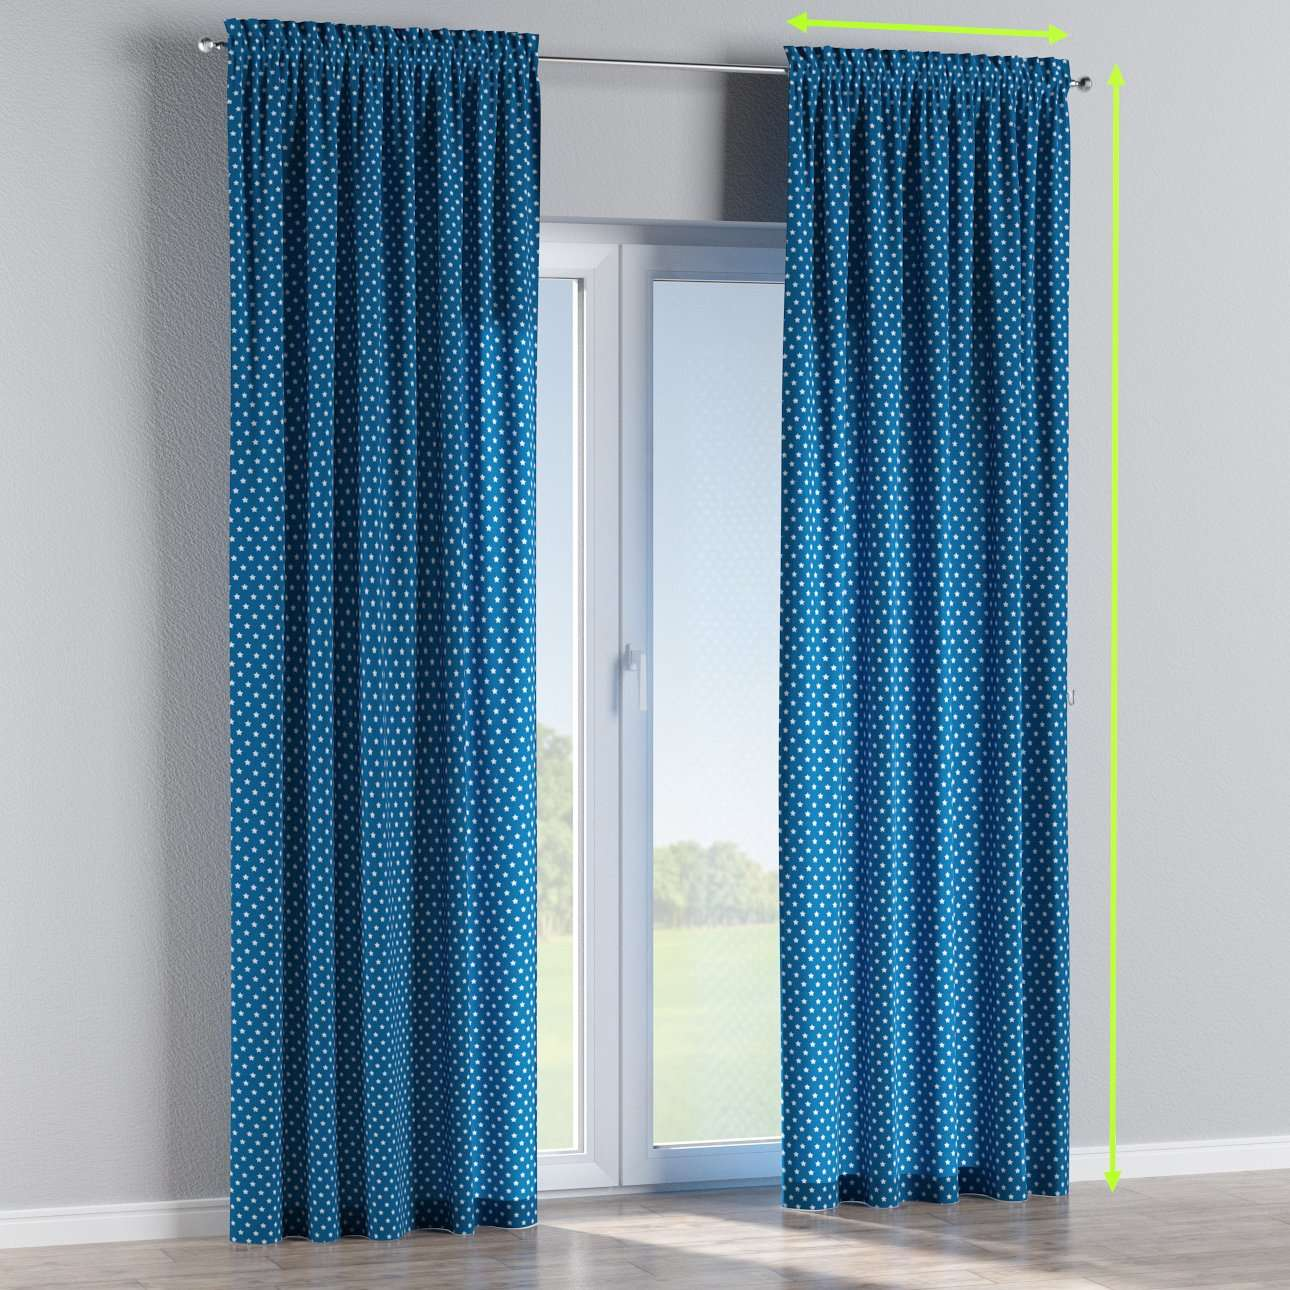 Slot and frill curtains in collection Ashley, fabric: 137-72